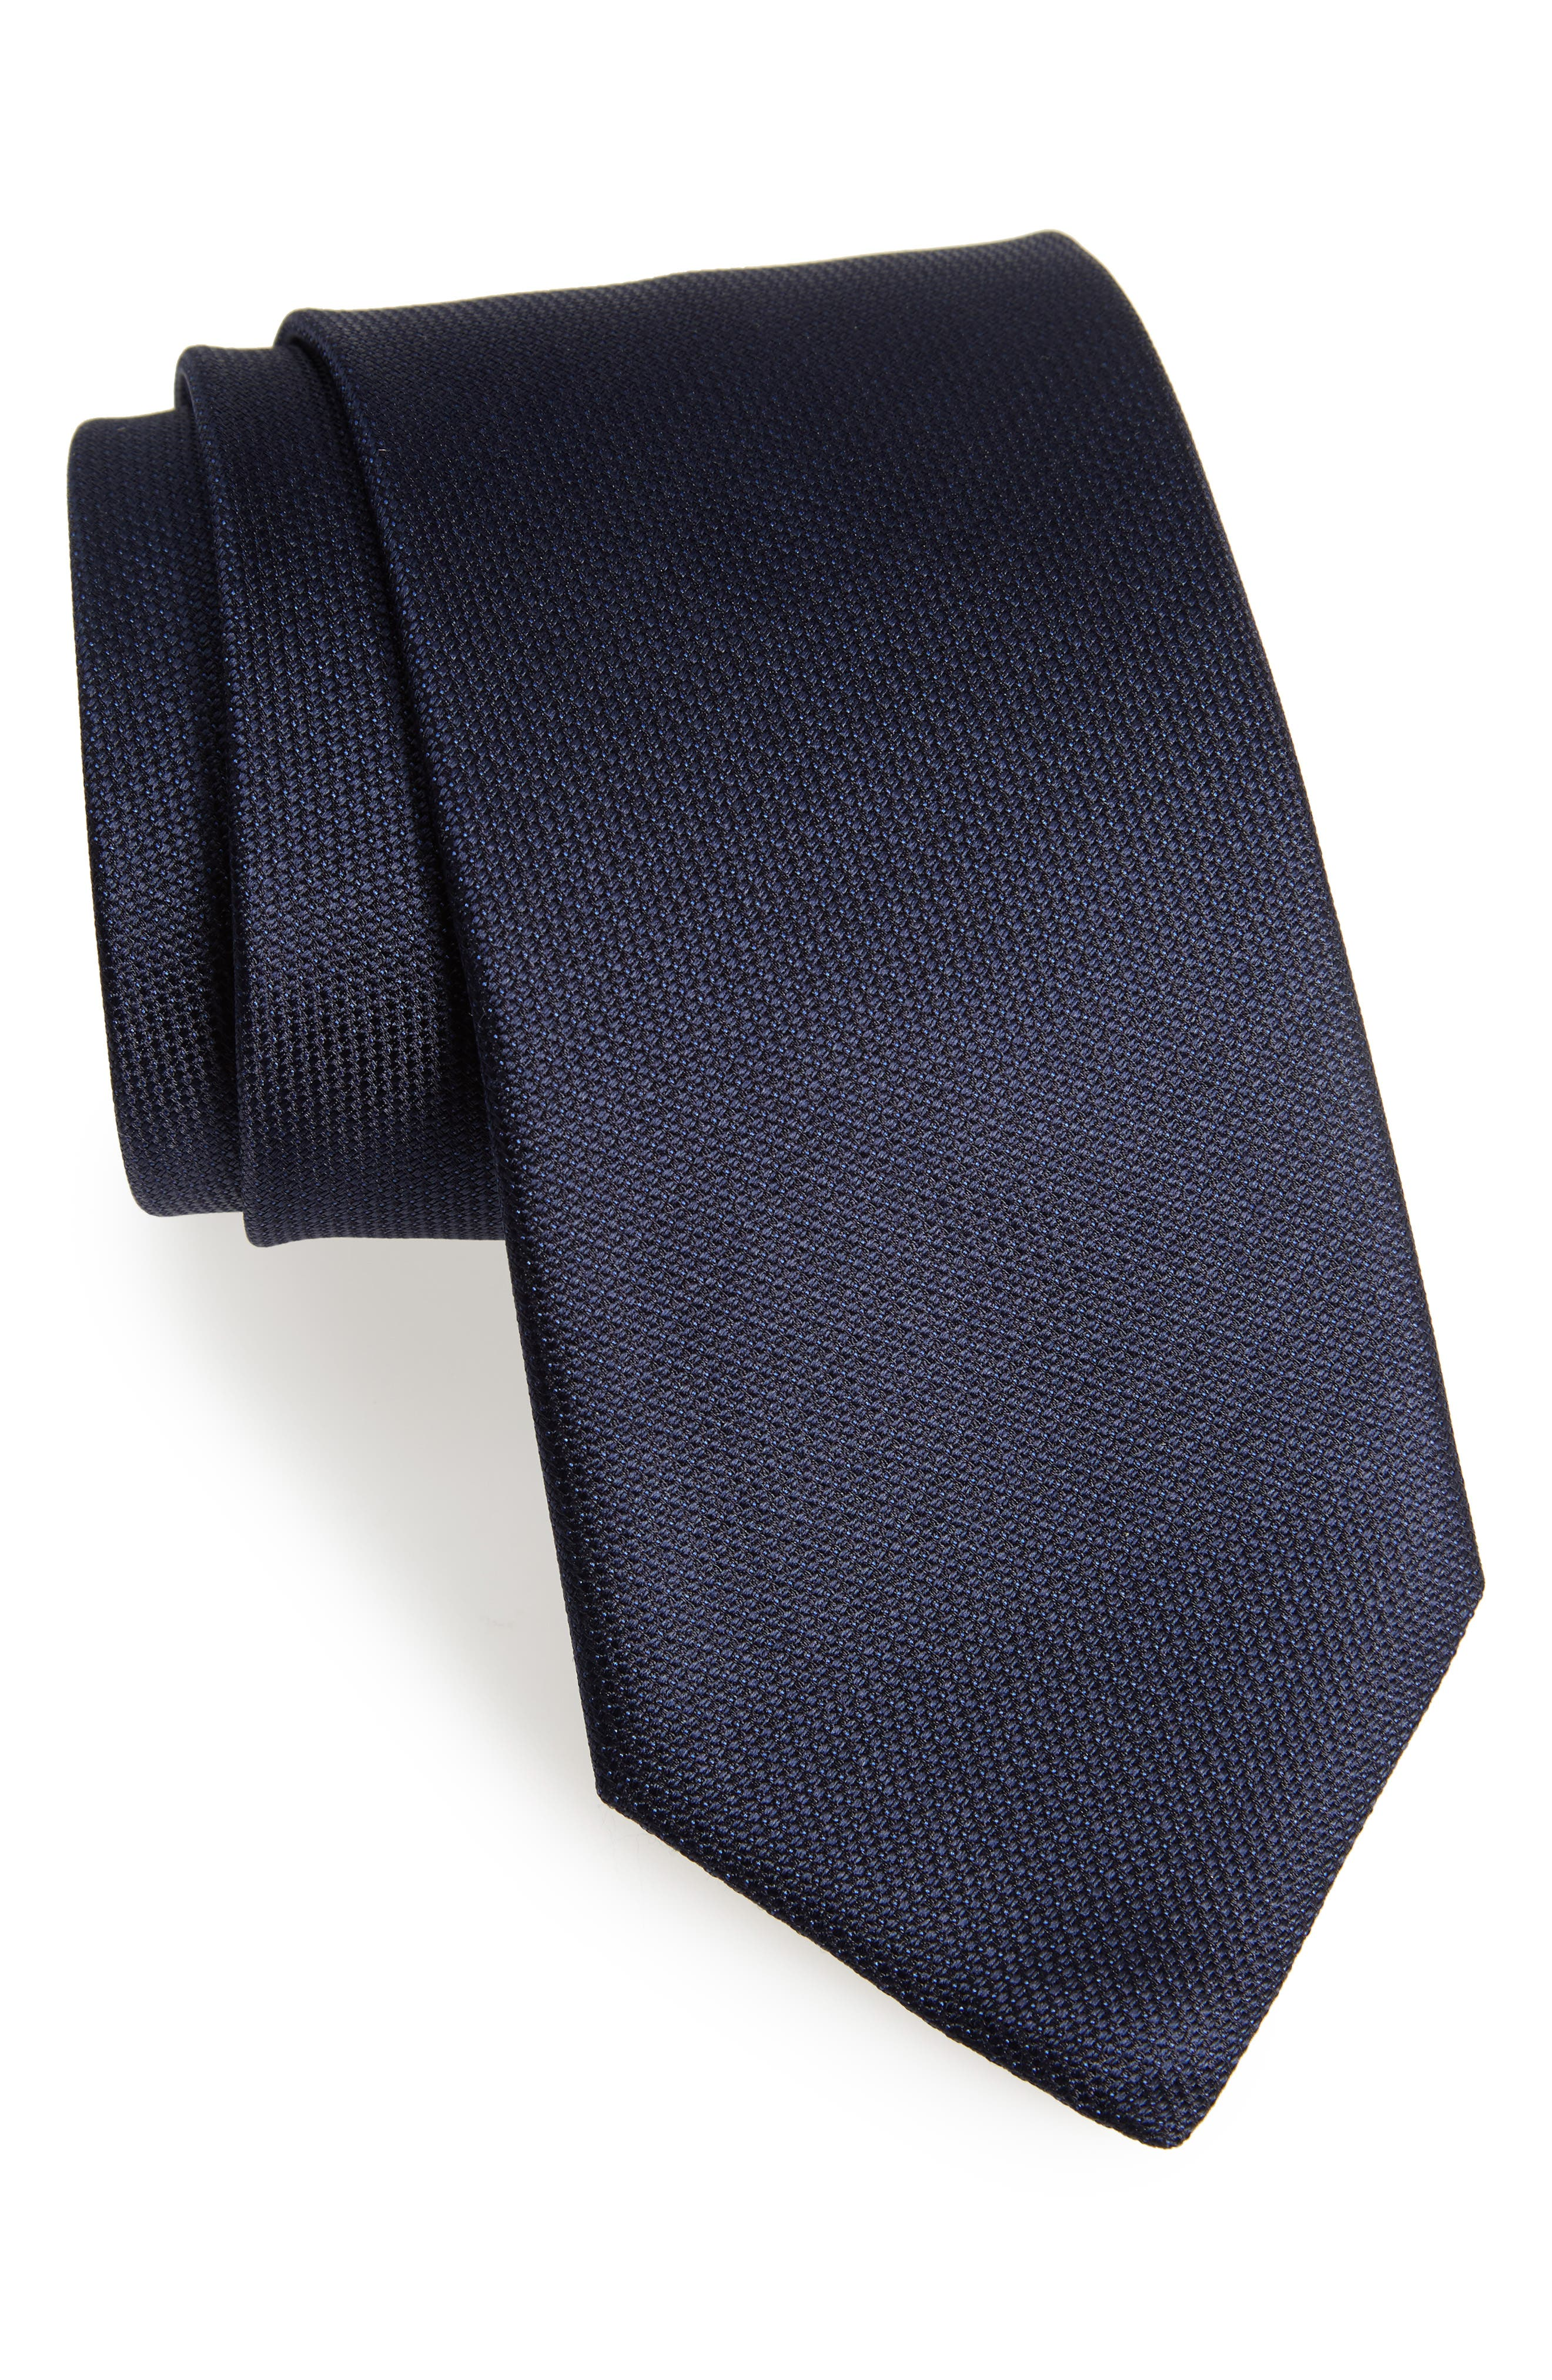 Solid Silk Tie,                             Main thumbnail 1, color,                             015